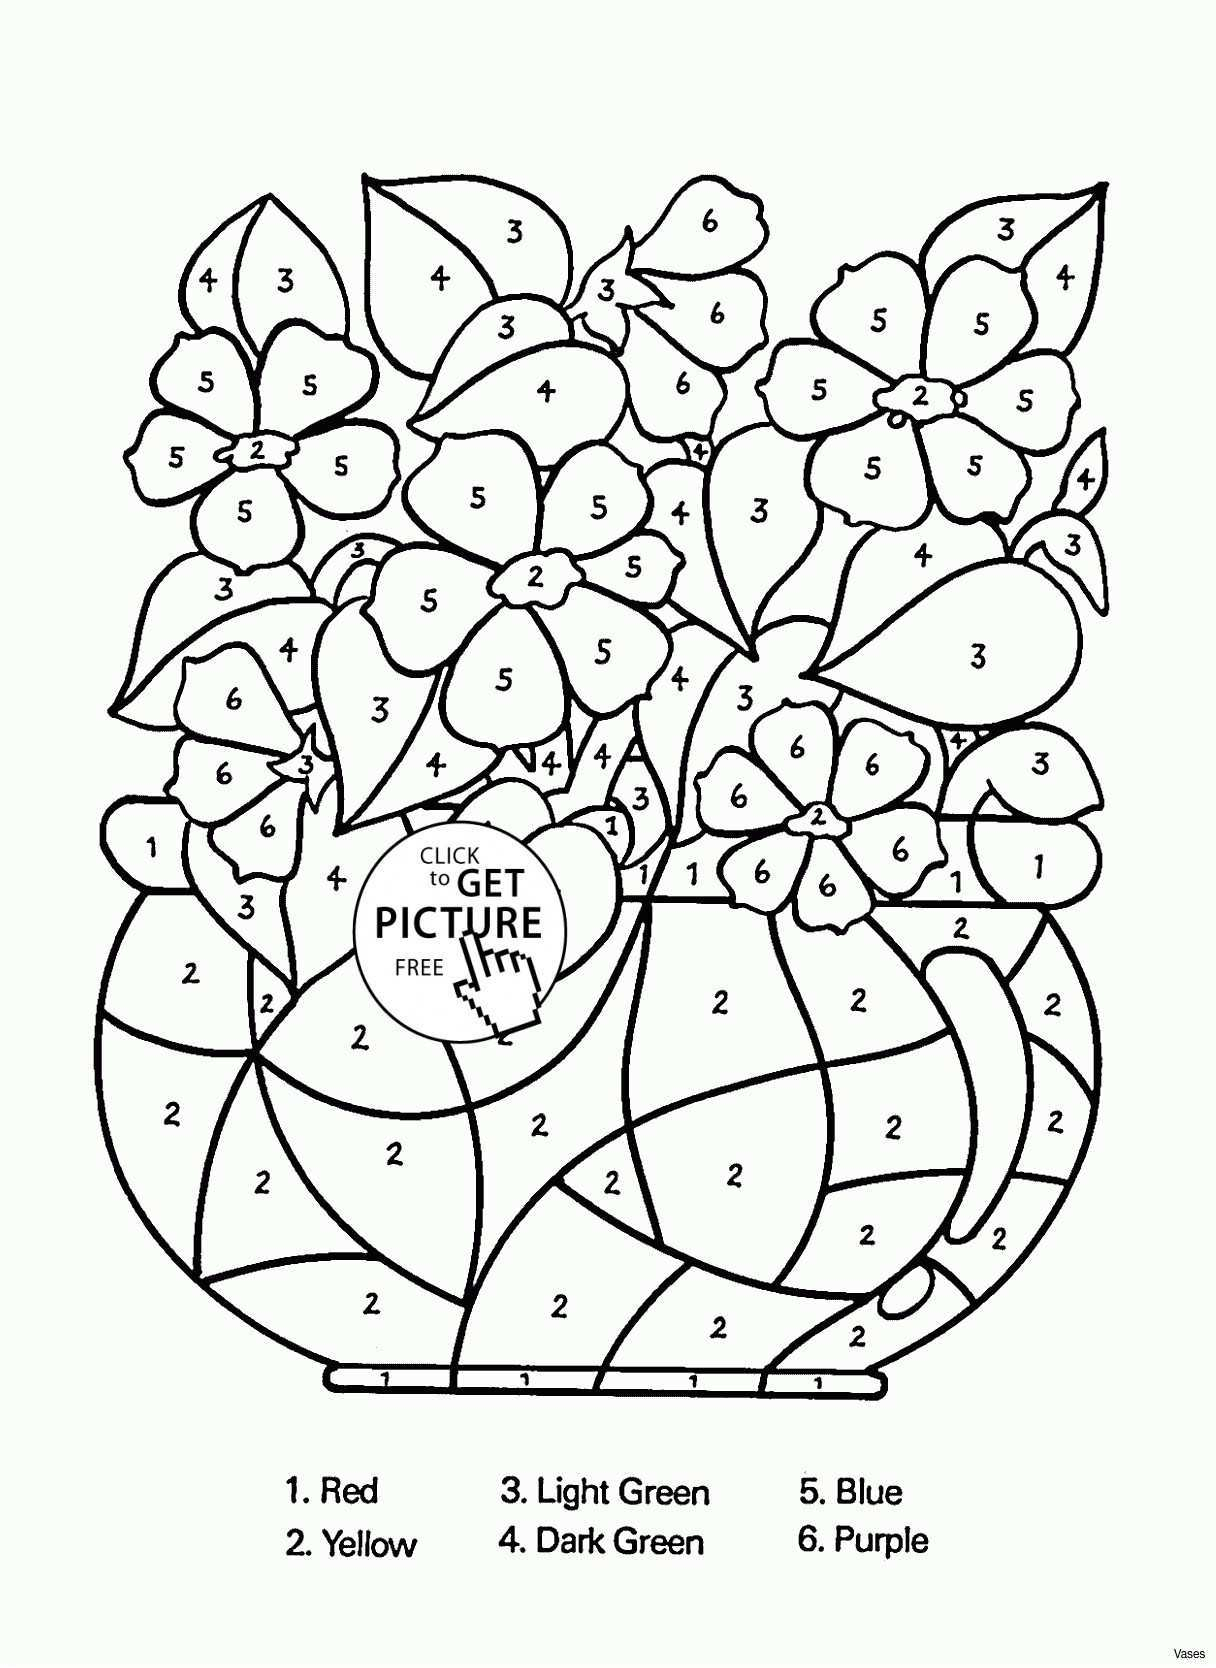 Solar Eclipse Coloring Page Eclipse Coloring Pages New Science Coloring Pages To Print